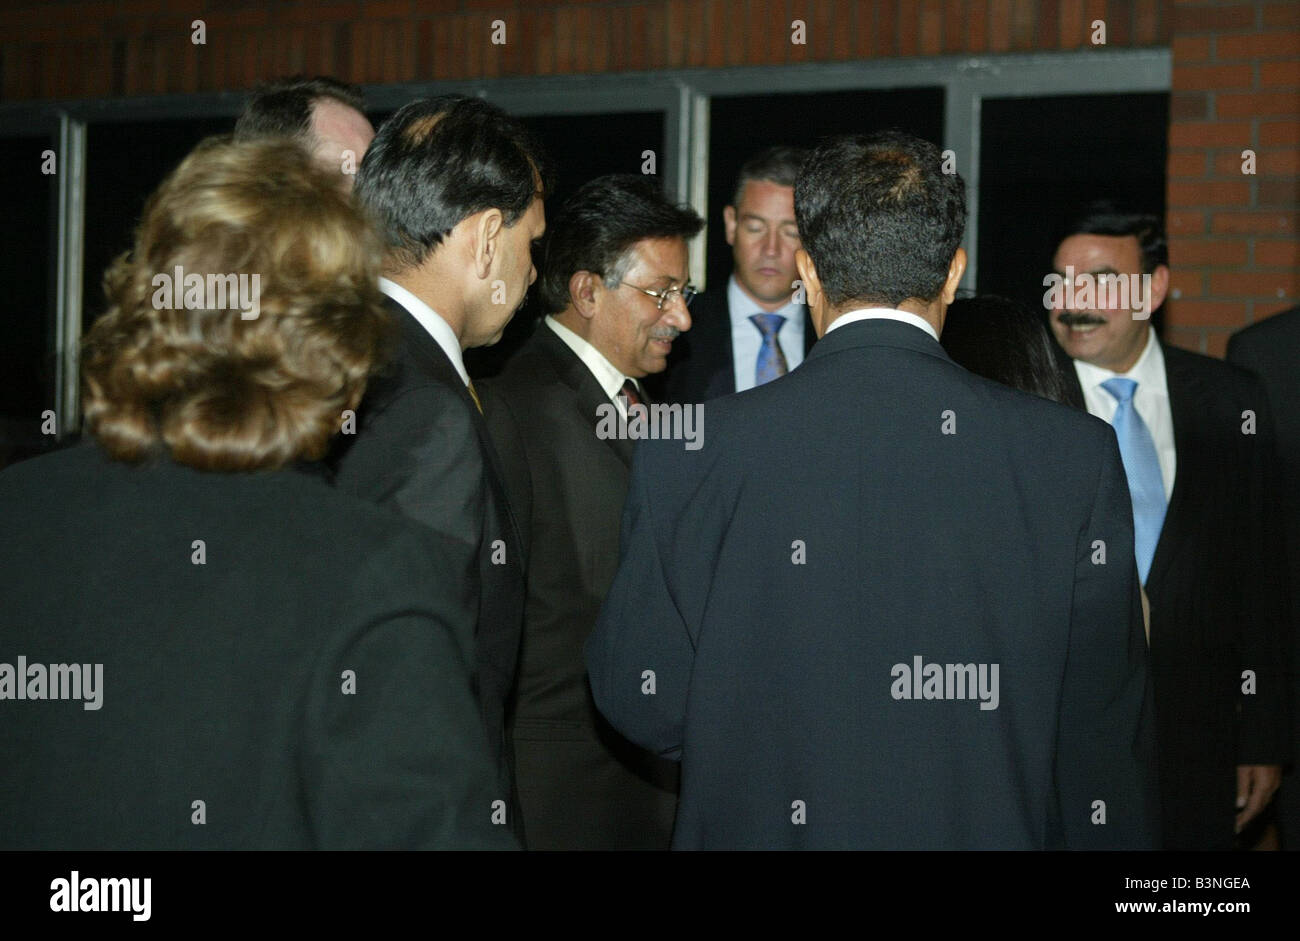 Pakistan President Musharraf arrives in Manchester with tight security December 2004 - Stock Image